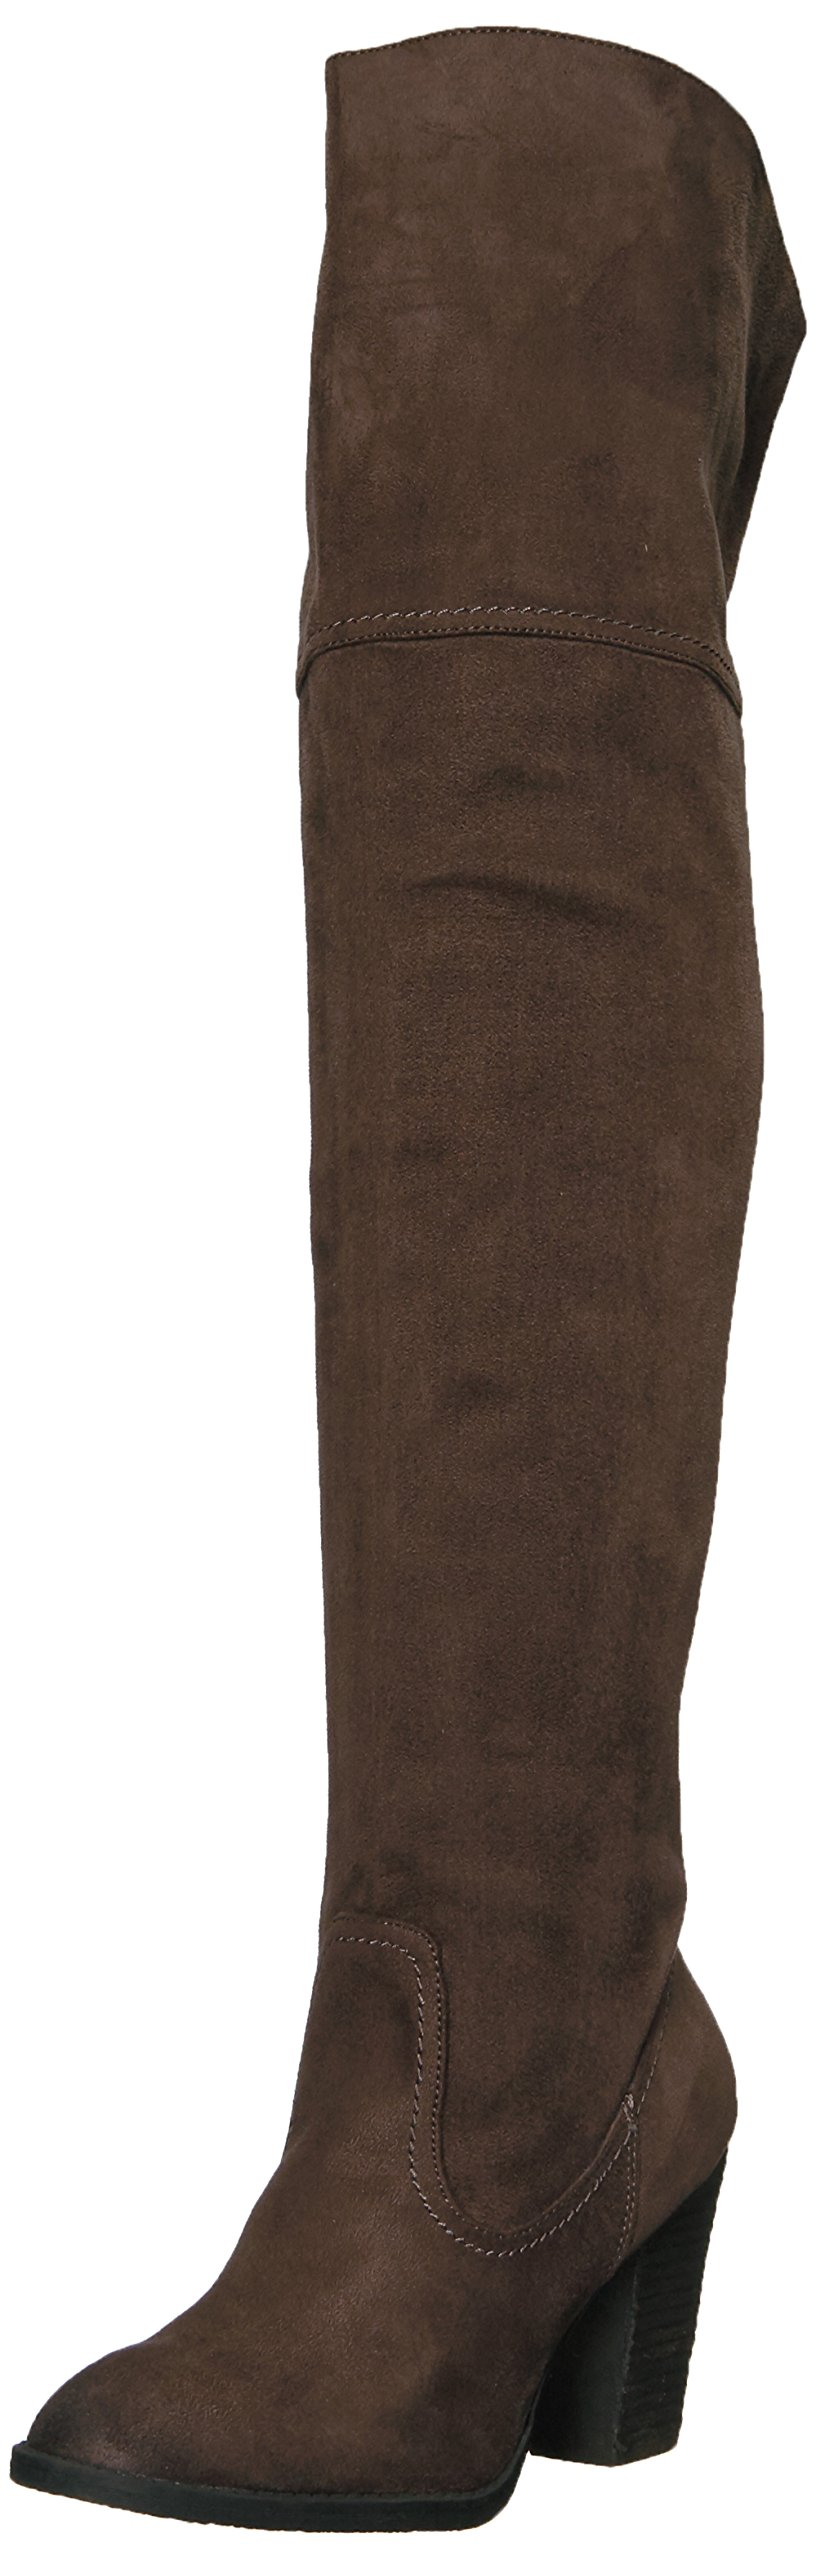 Not Rated Women's Andra Riding Boot, Charcoal, 7.5 M US